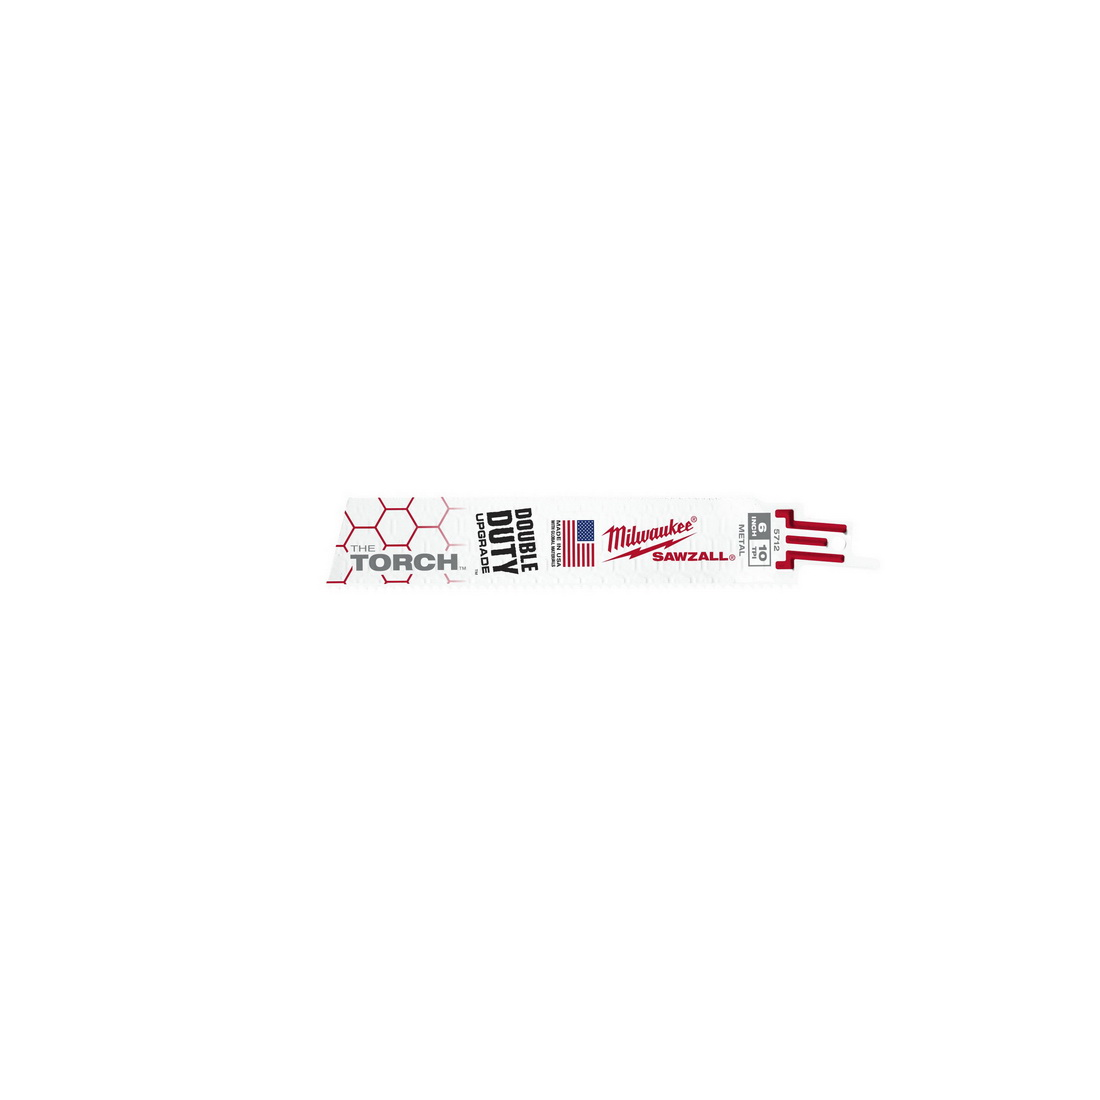 SAWZALL Torch Metal Blade 230mm 10 TPI 5 Pack